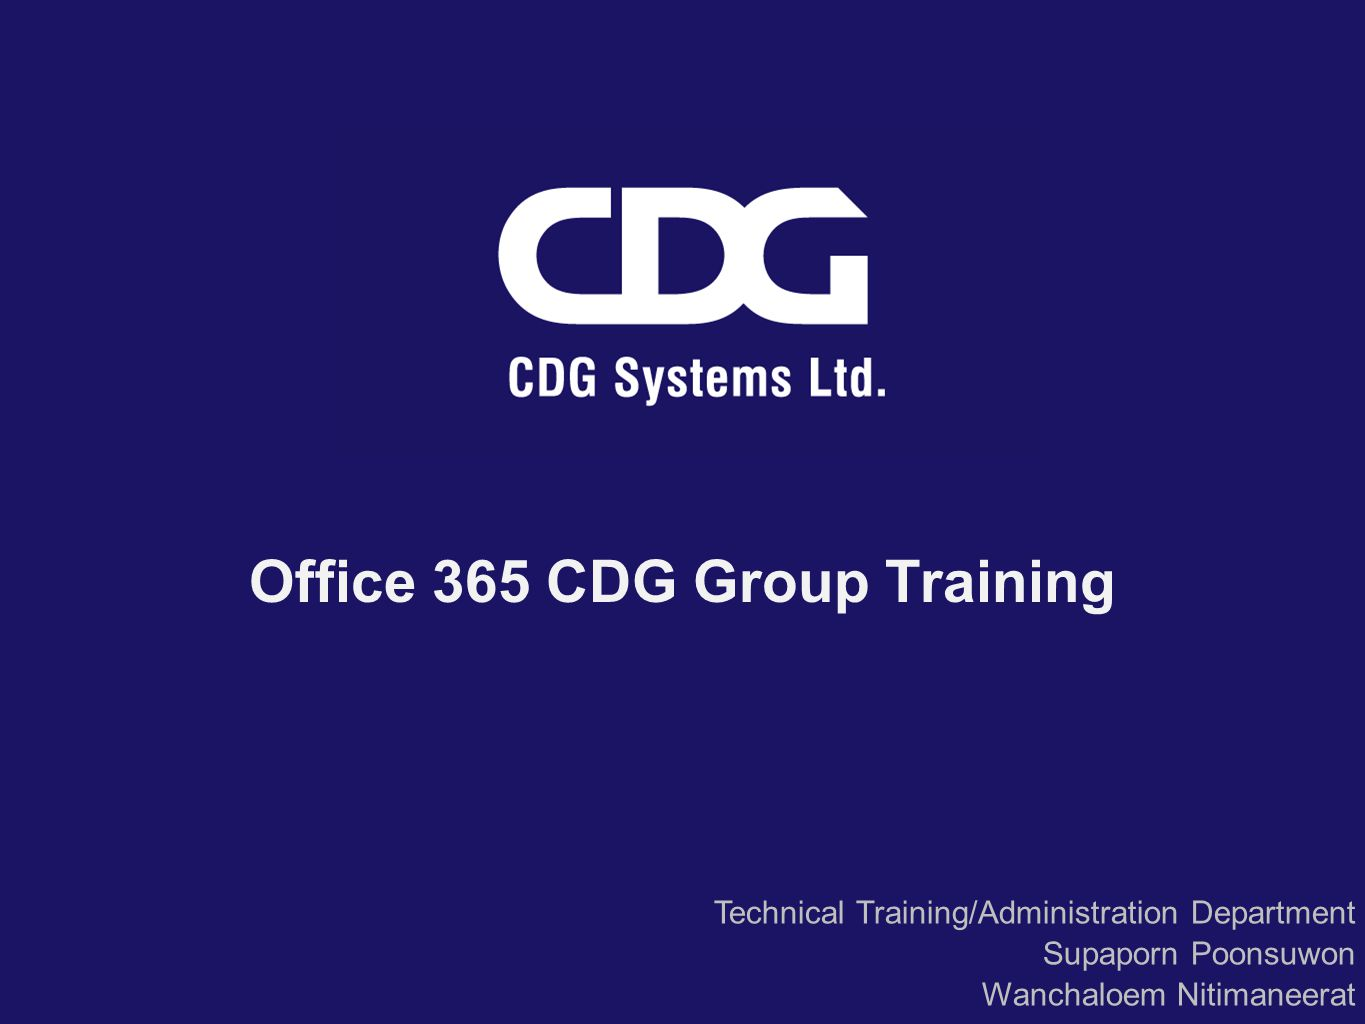 Office 365 CDG Group Training